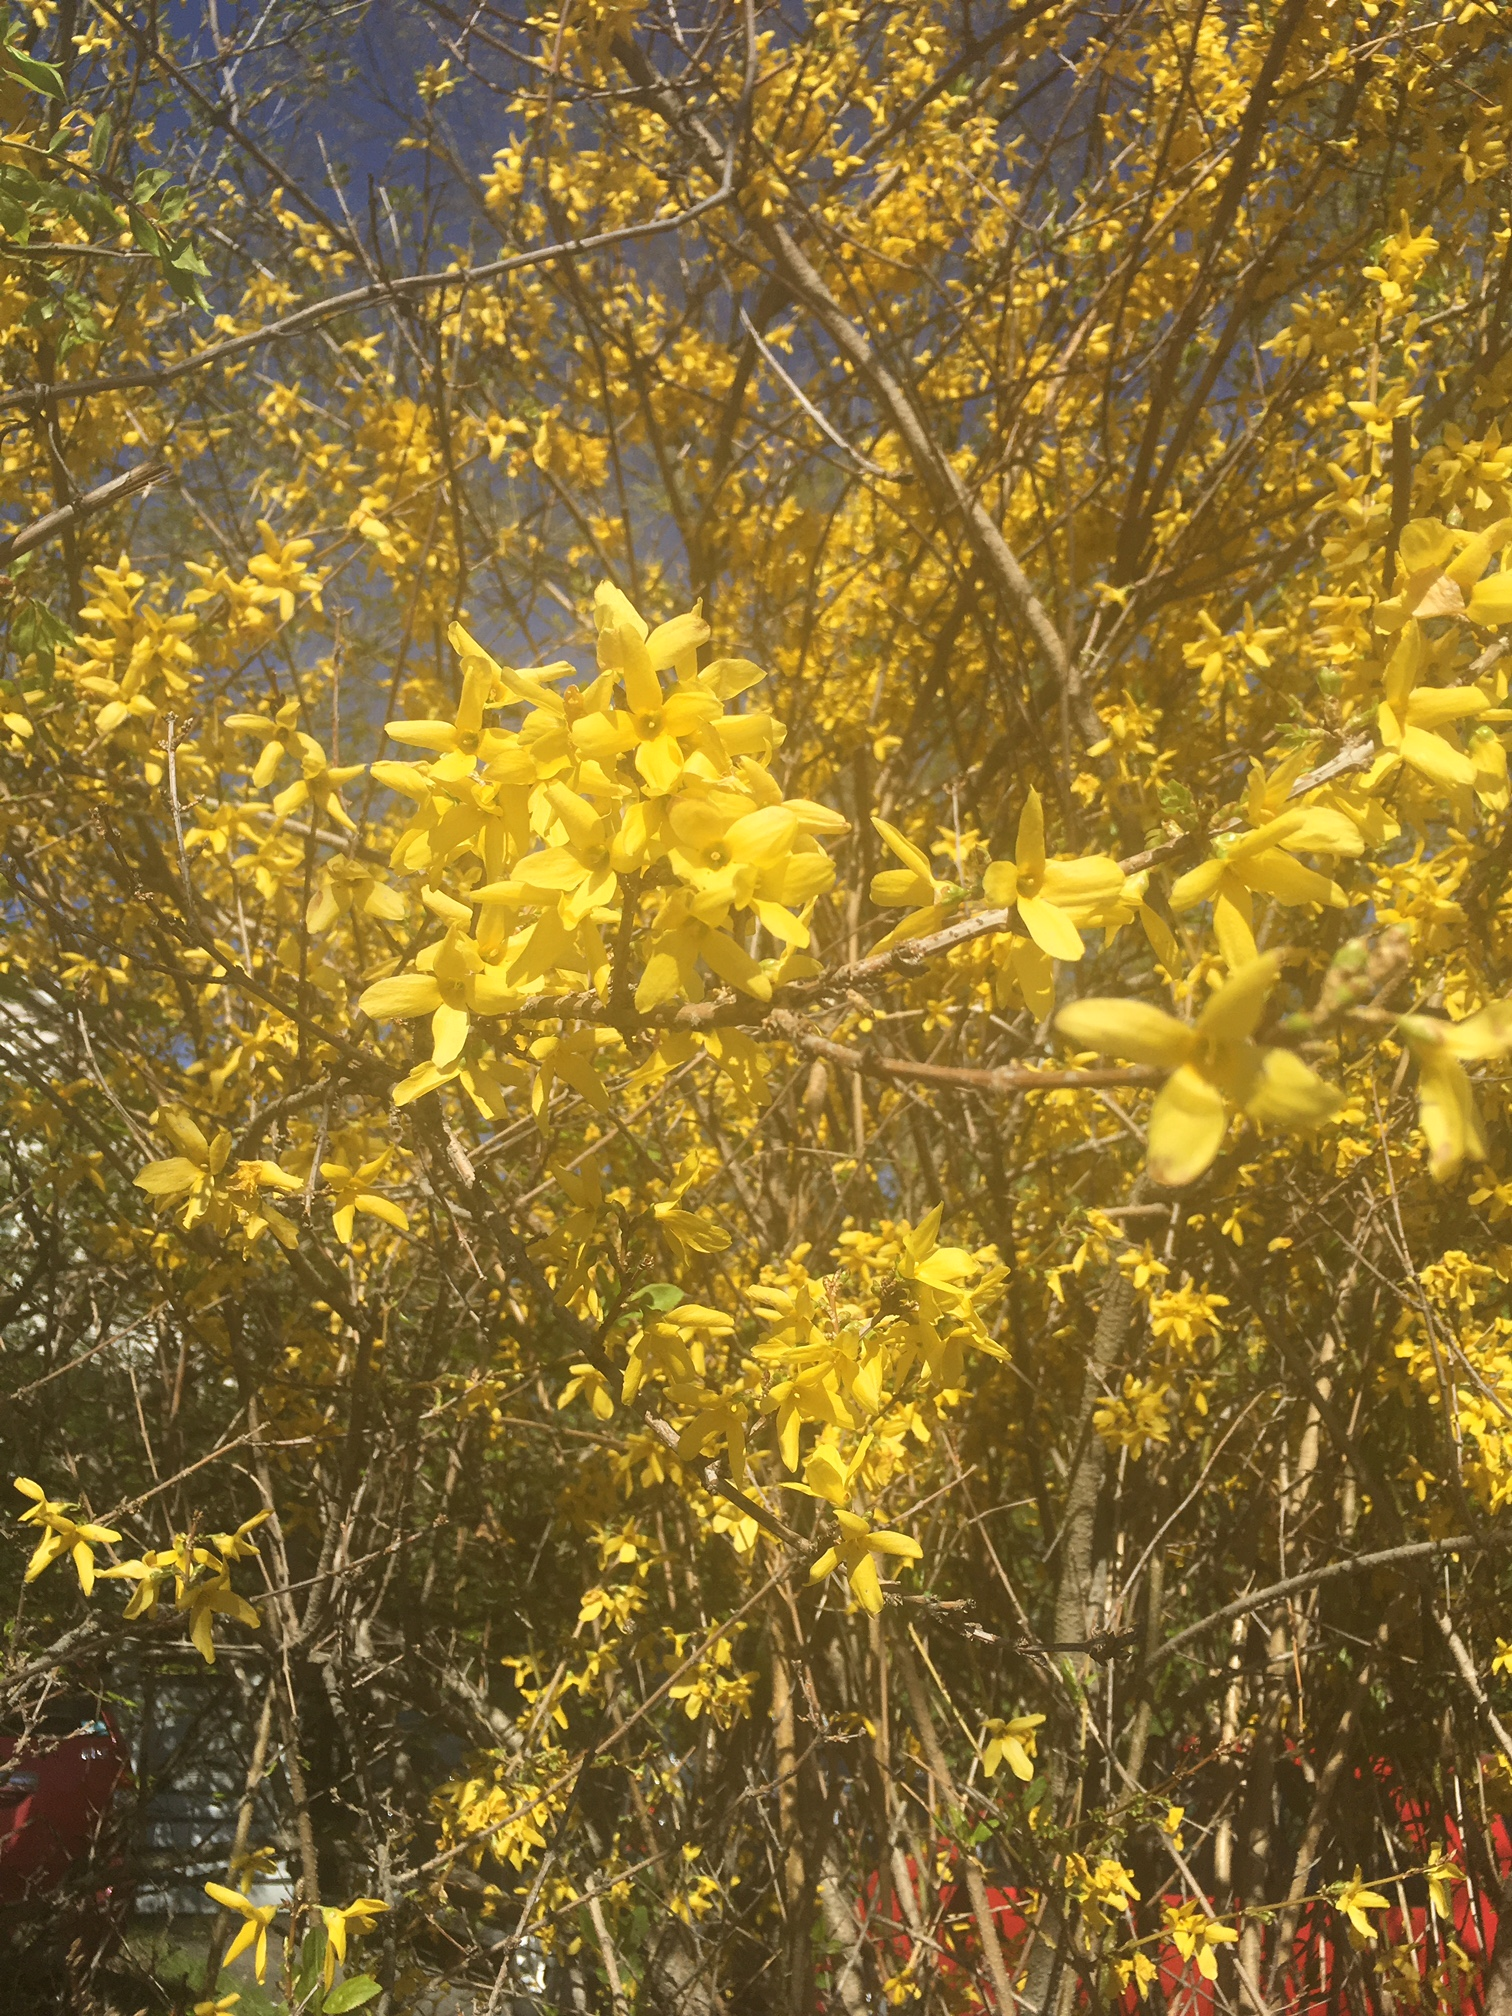 Janine sun nature on campus the next plant i came across had tall brown stalks with smooth bark dotted in striking clusters of four petaled yellow flowers the flowers pistils were mightylinksfo